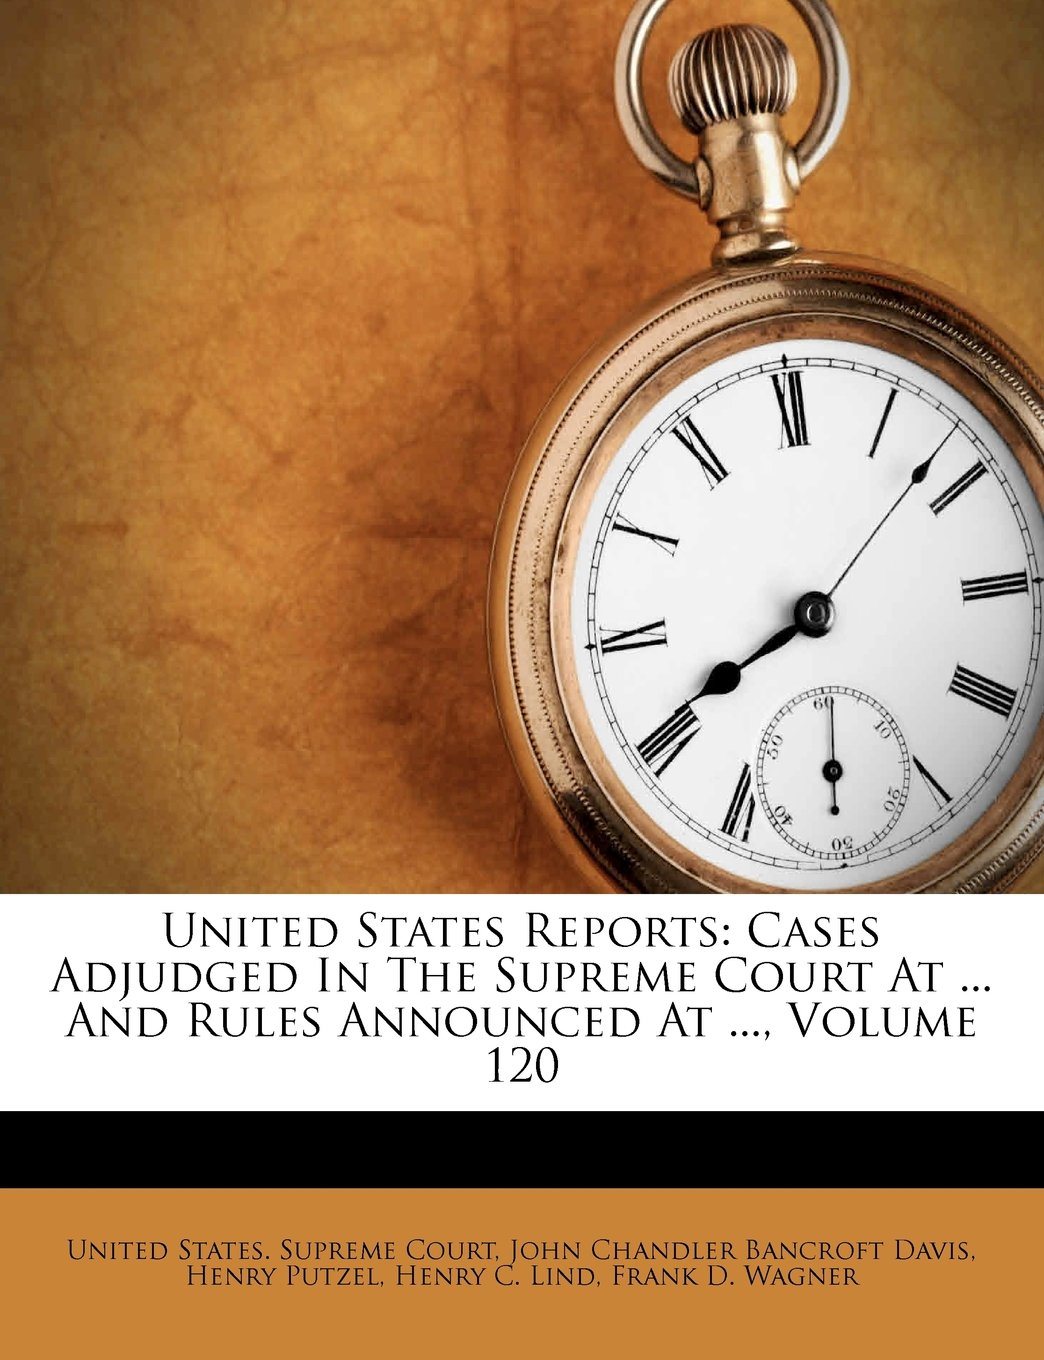 Download United States Reports: Cases Adjudged In The Supreme Court At ... And Rules Announced At ..., Volume 120 PDF